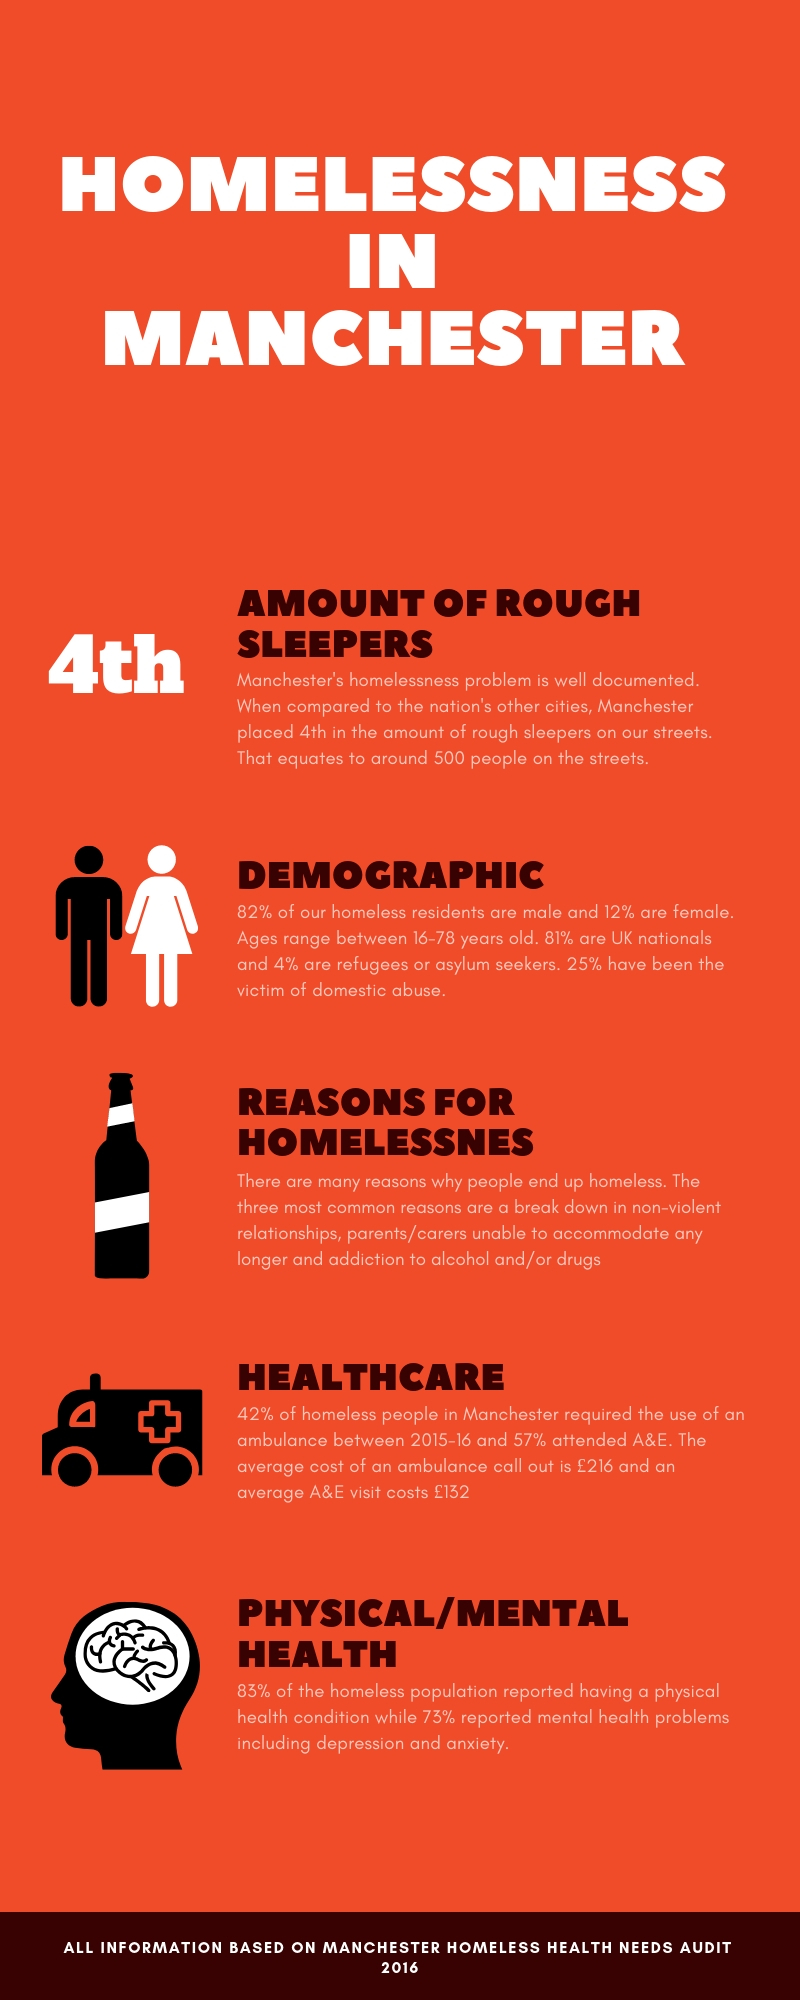 Information about homelessness in Manchester